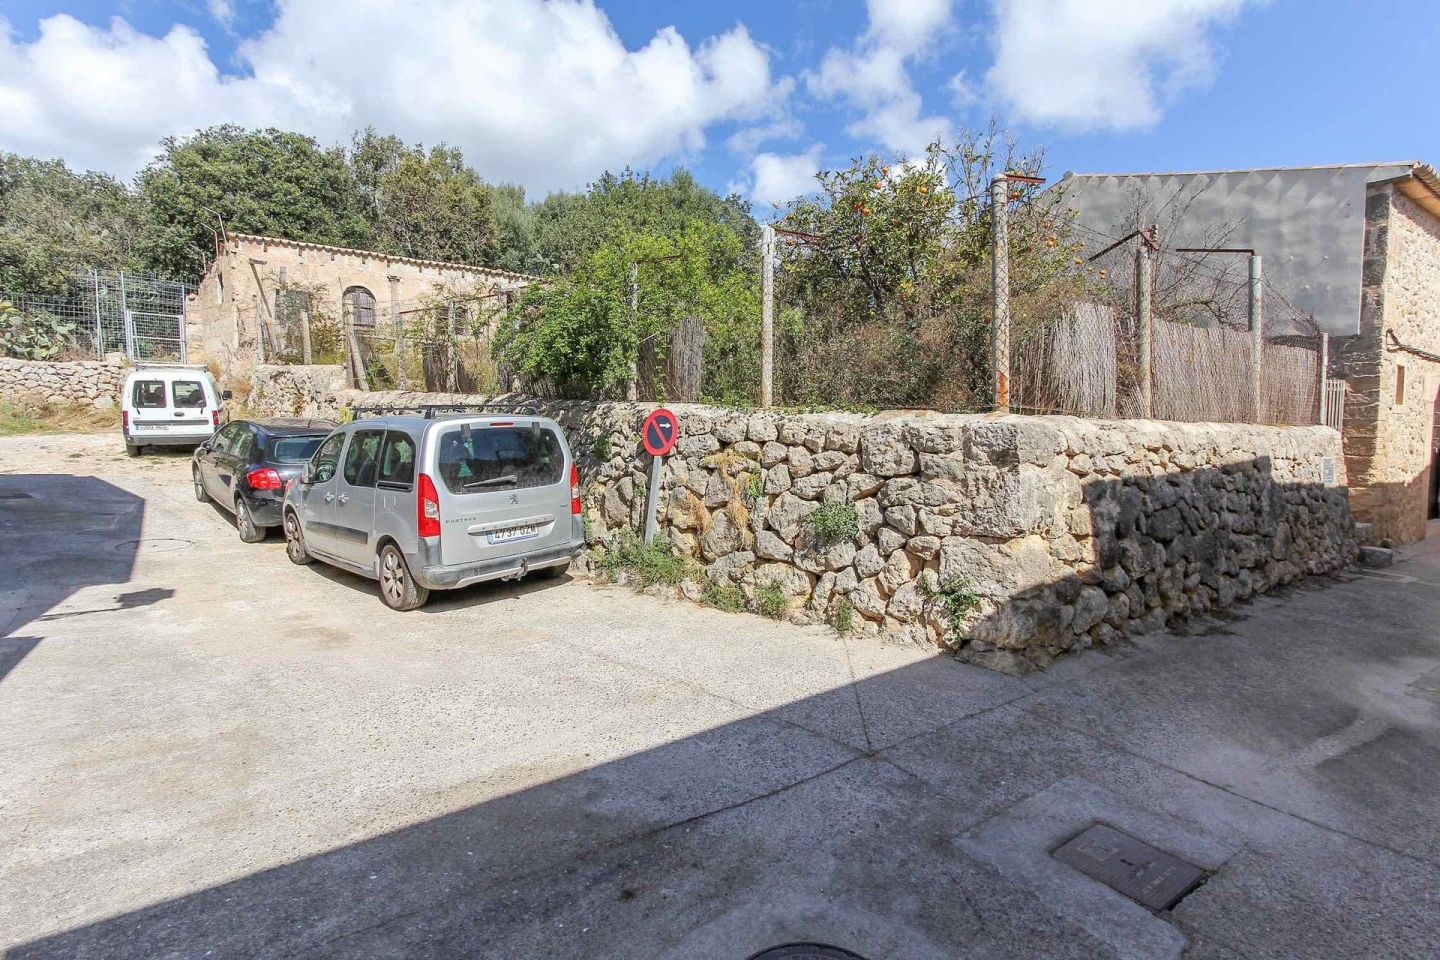 4 Bed Urban Land for sale in Pollensa 9